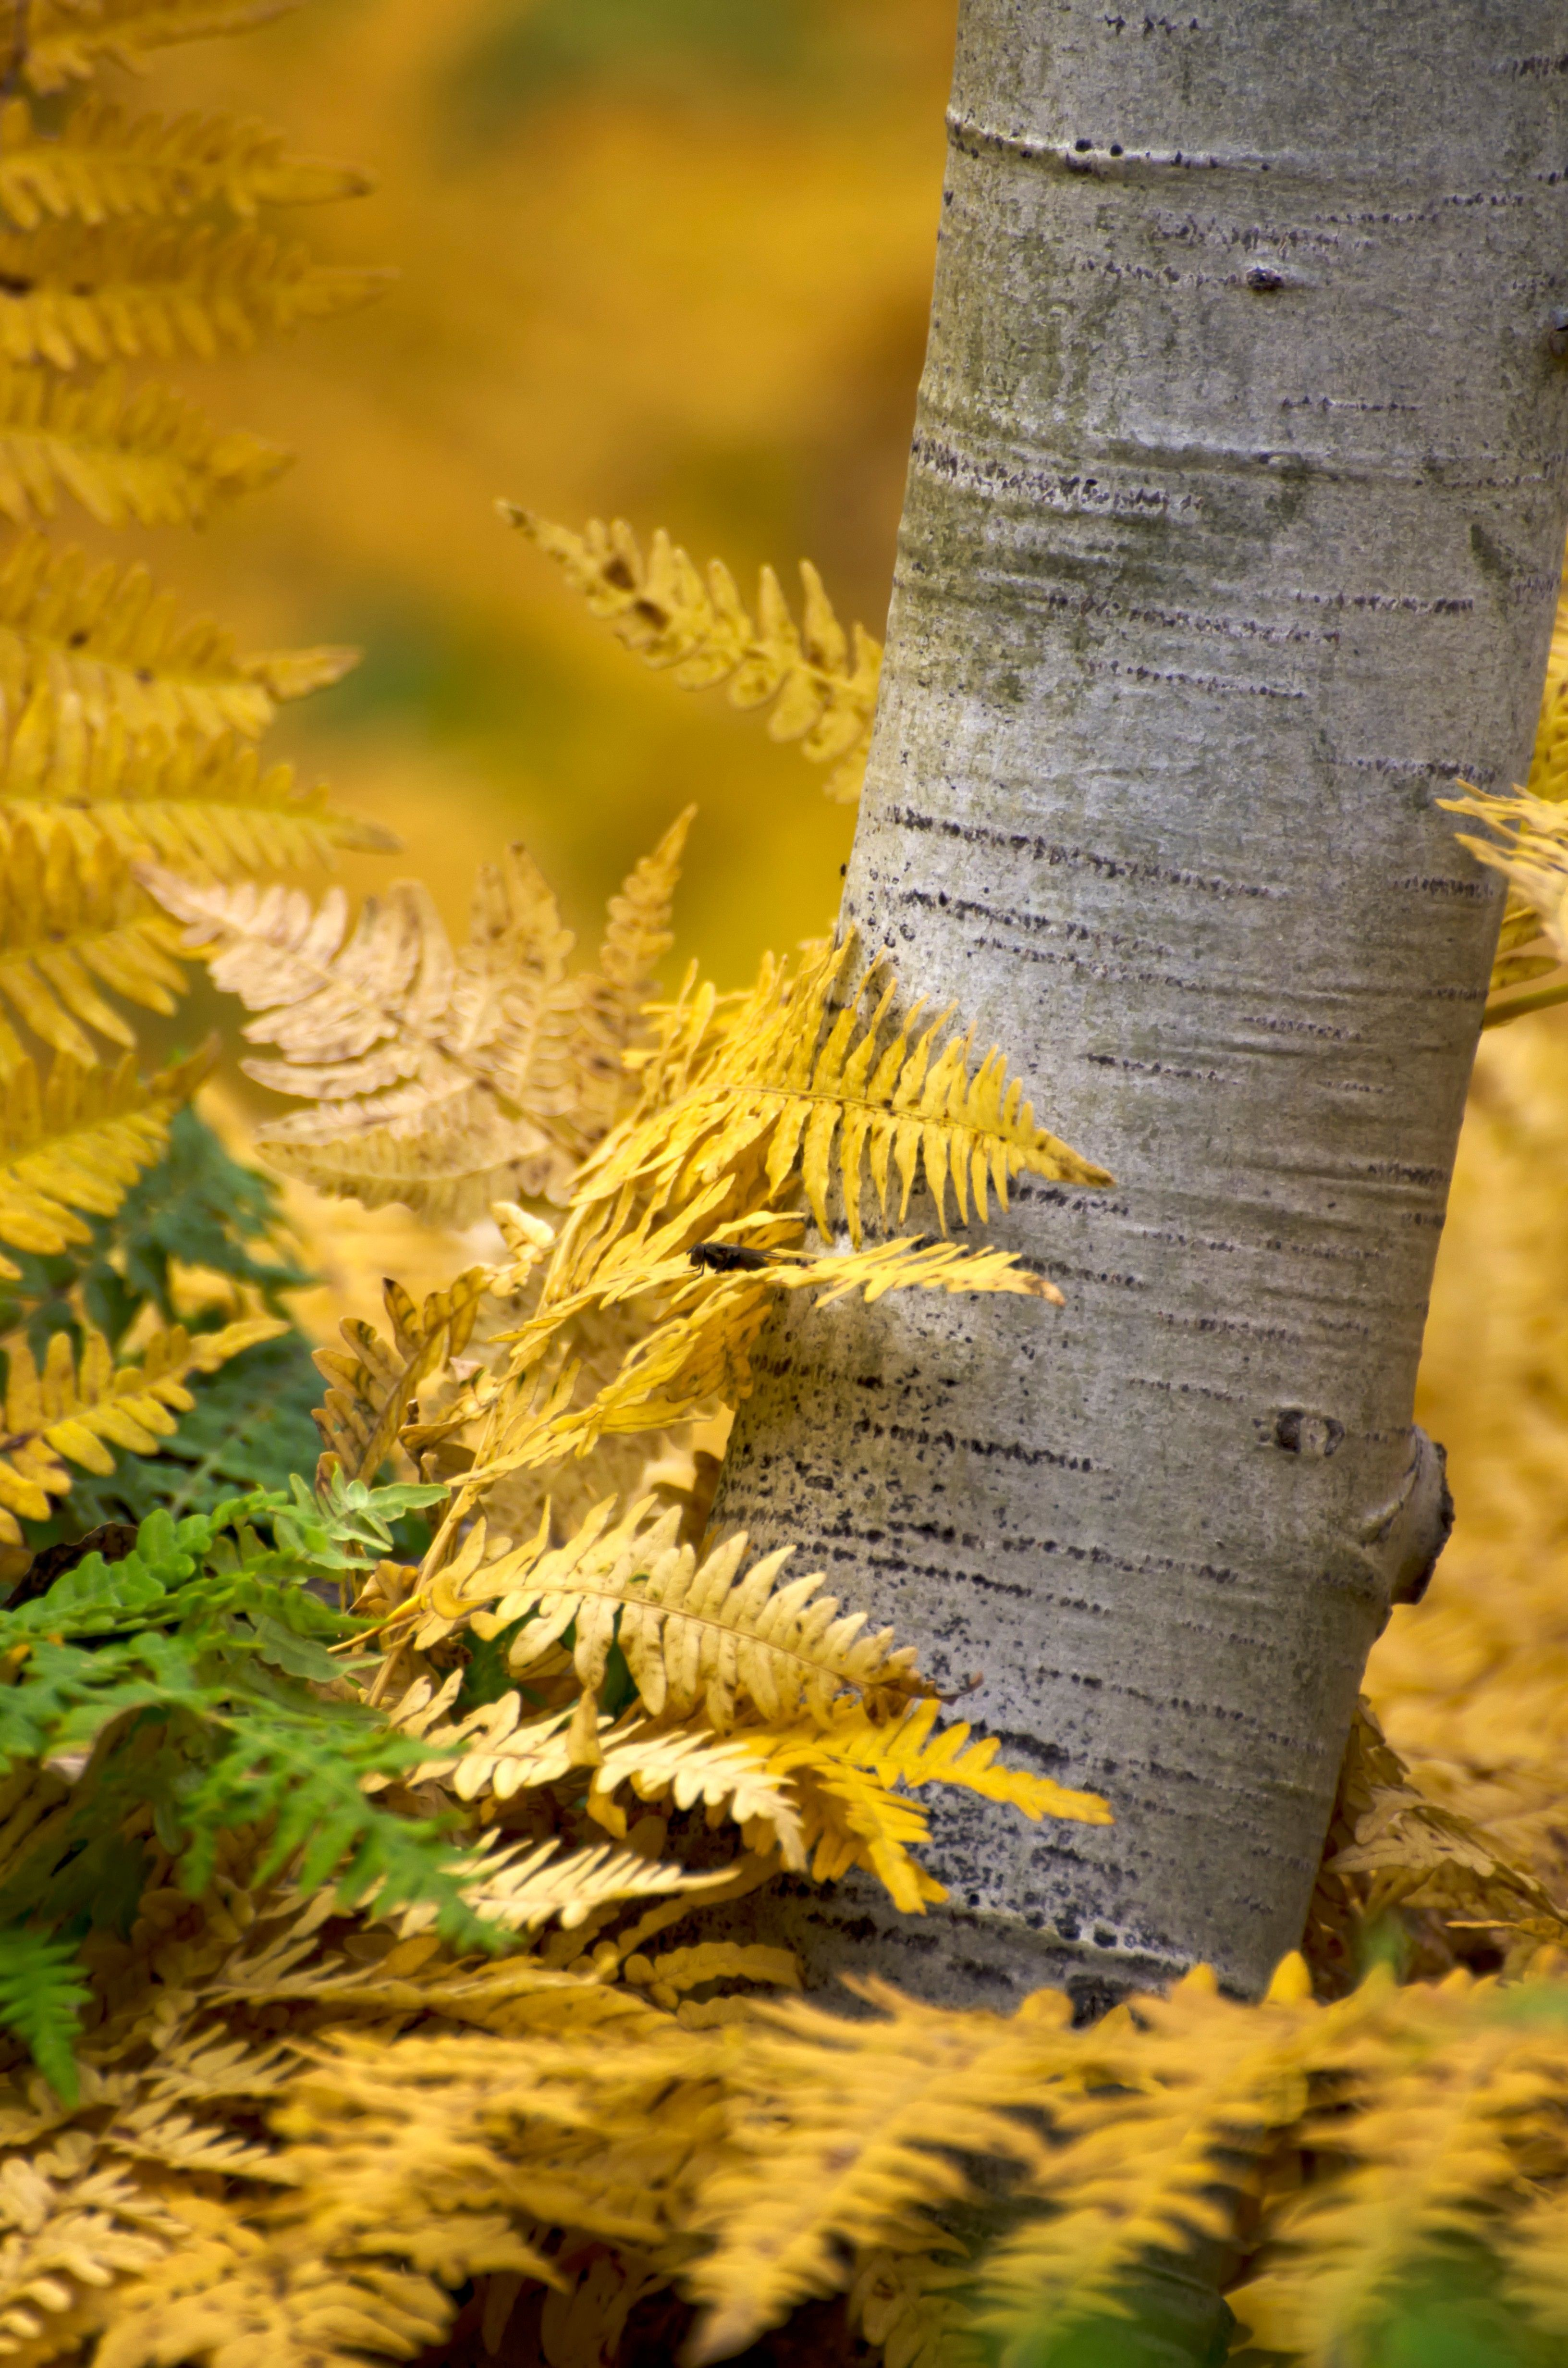 Bright yellow fern leaves around the trunk of an aspen tree.